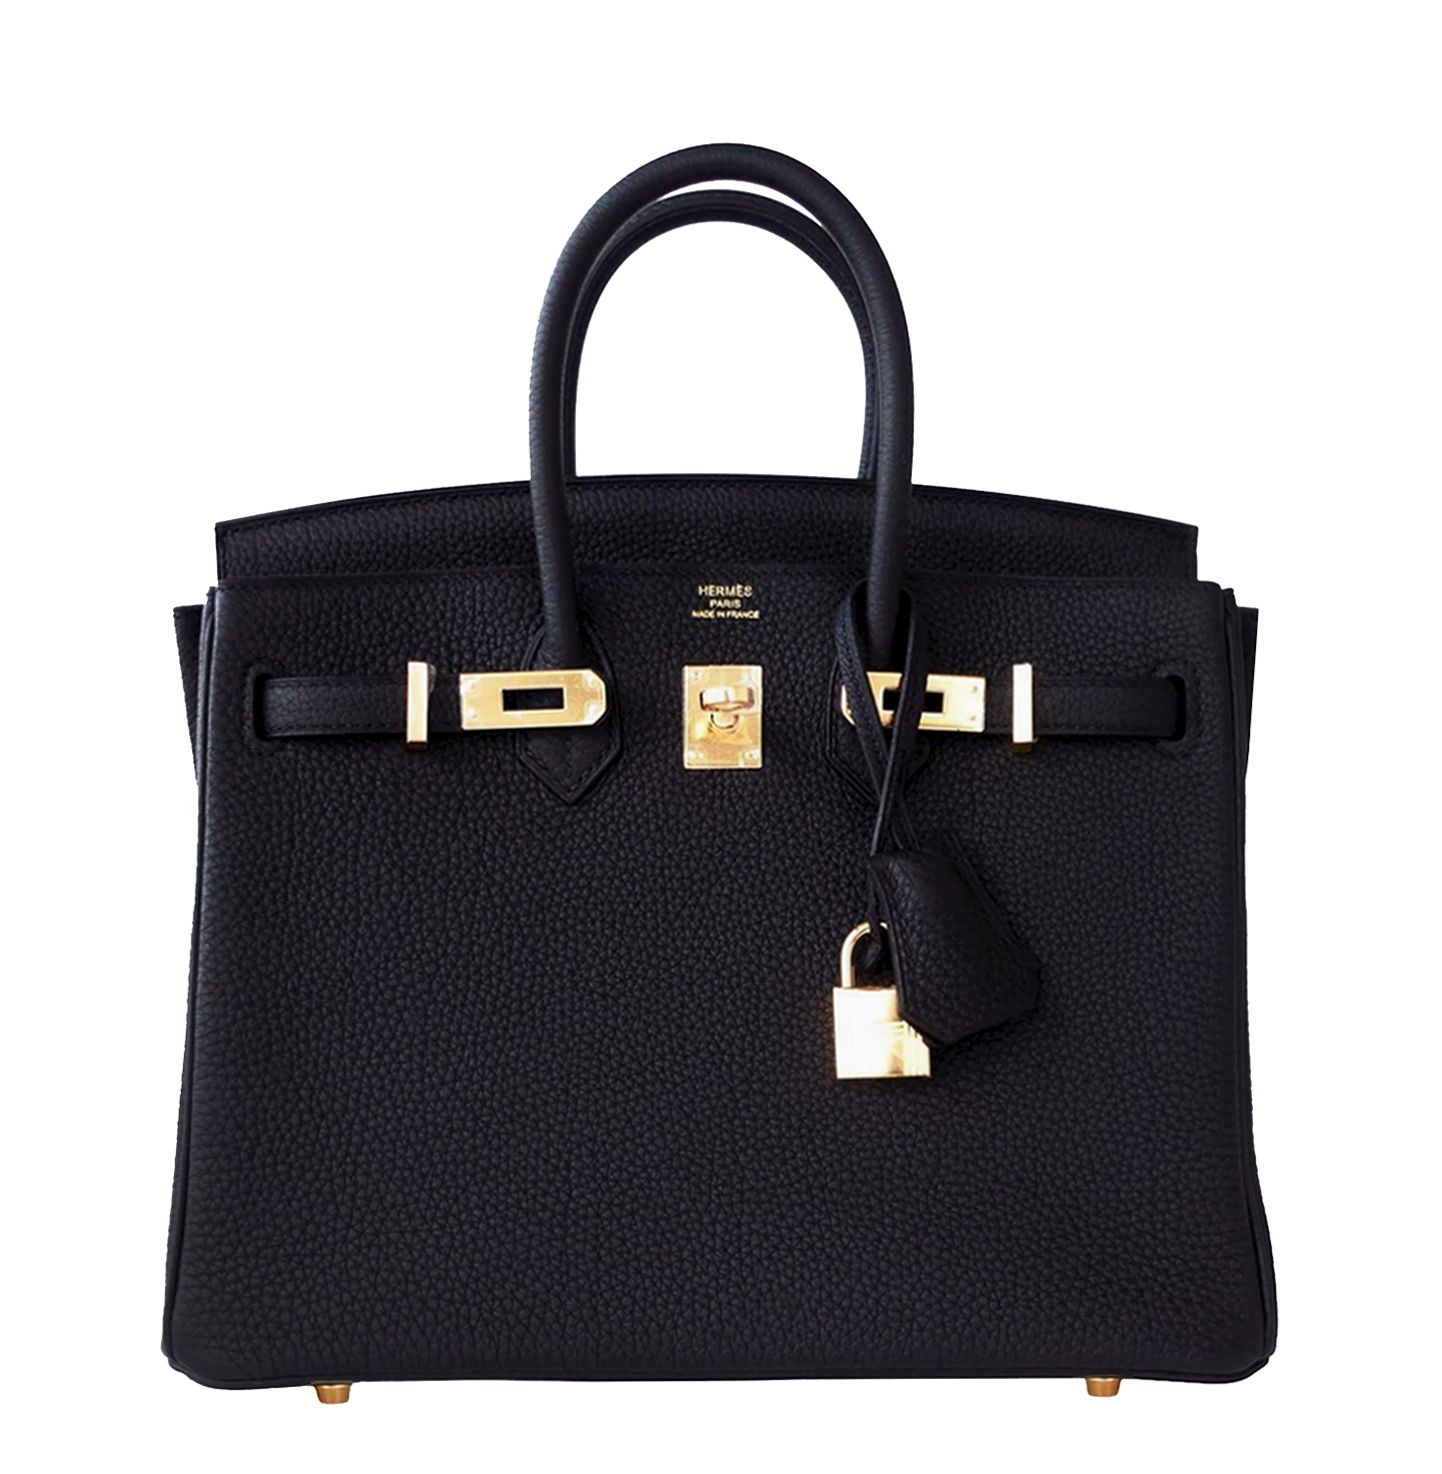 39d645be72 Hermes  Birkin  Bag Black Togo Gold Hardware